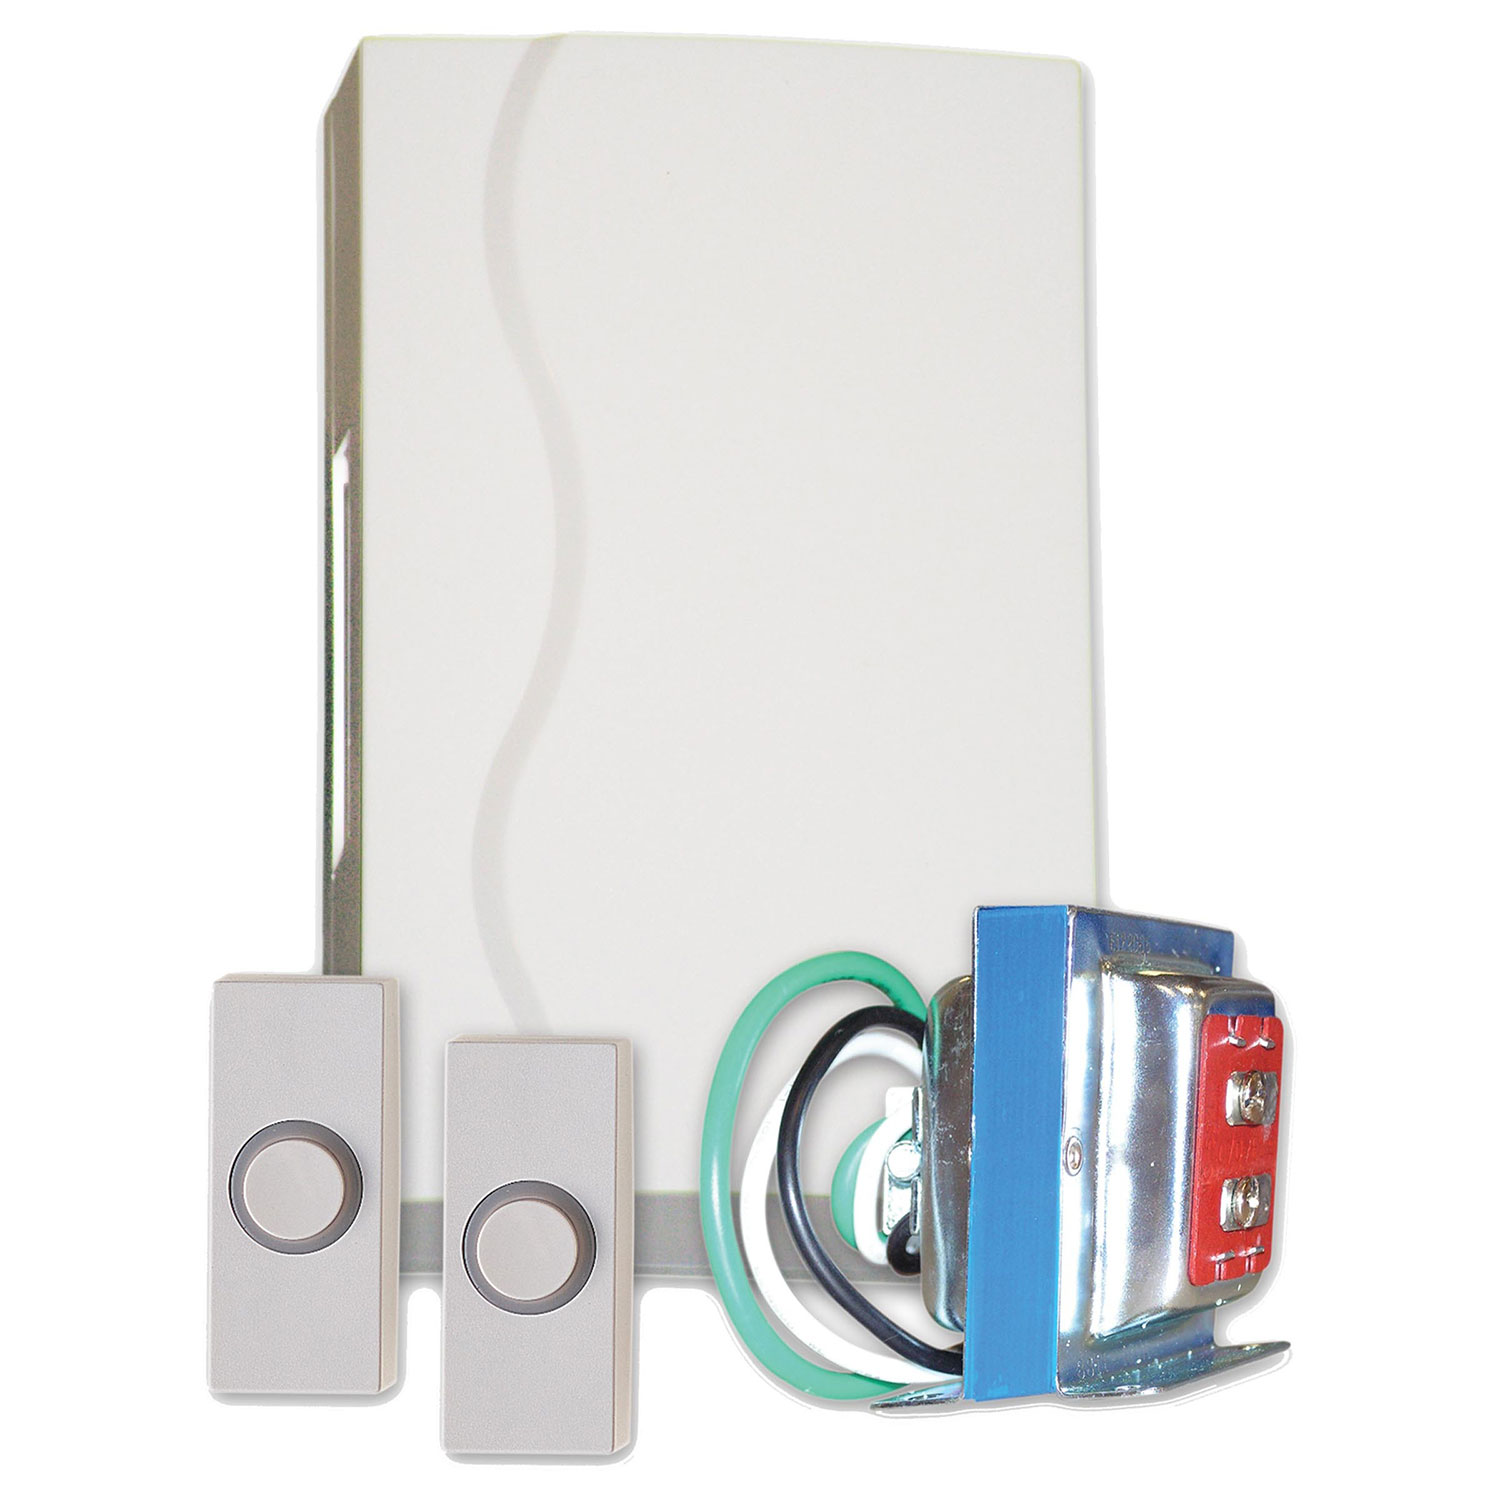 Honeywell RCW110KB1008/N Door Chime Contractor Kit